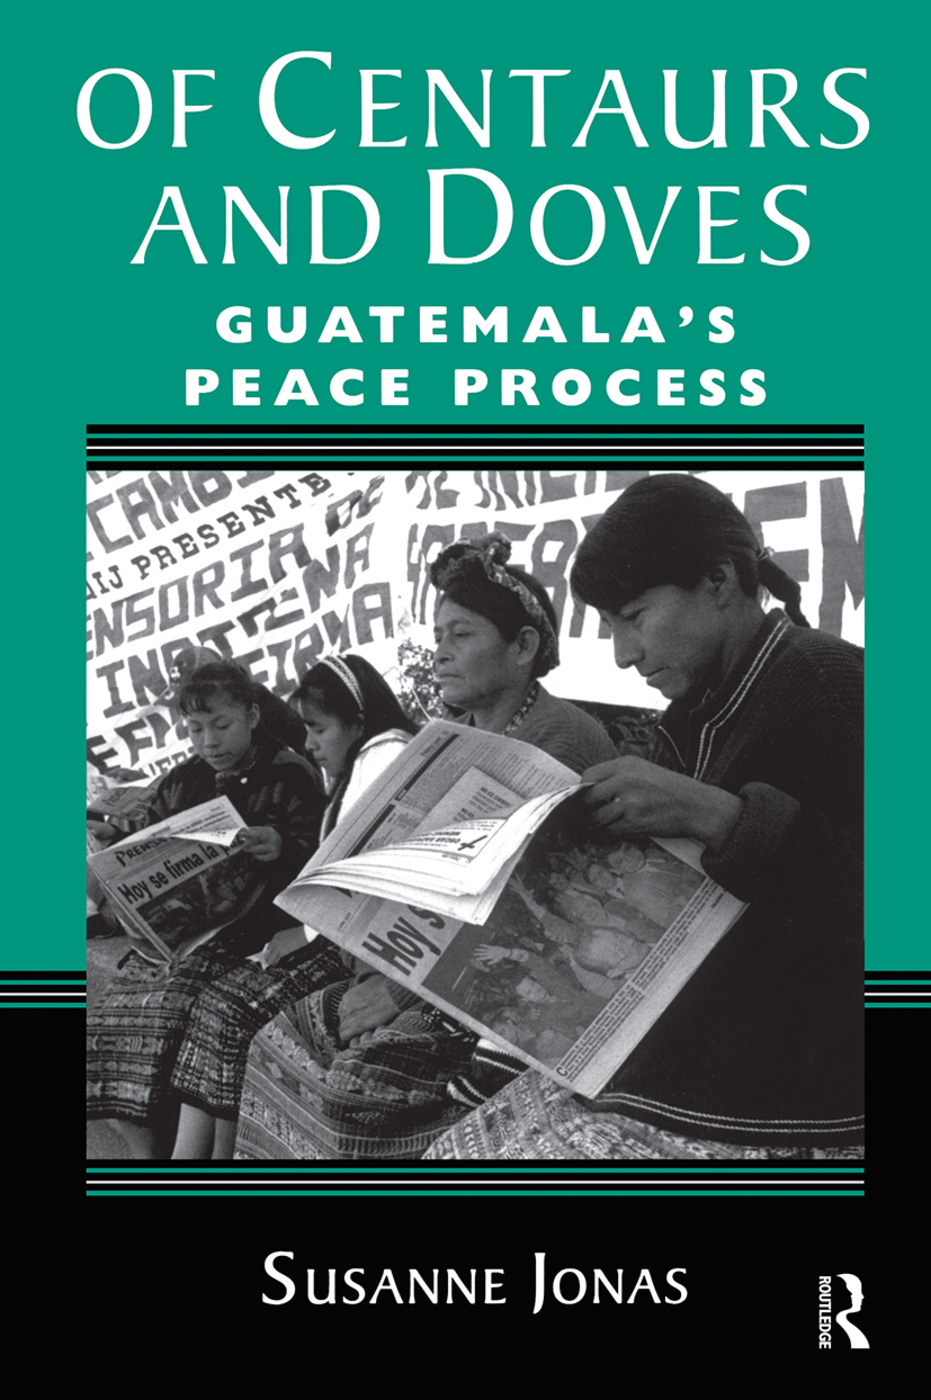 Of Centaurs And Doves: Guatemala's Peace Process book cover